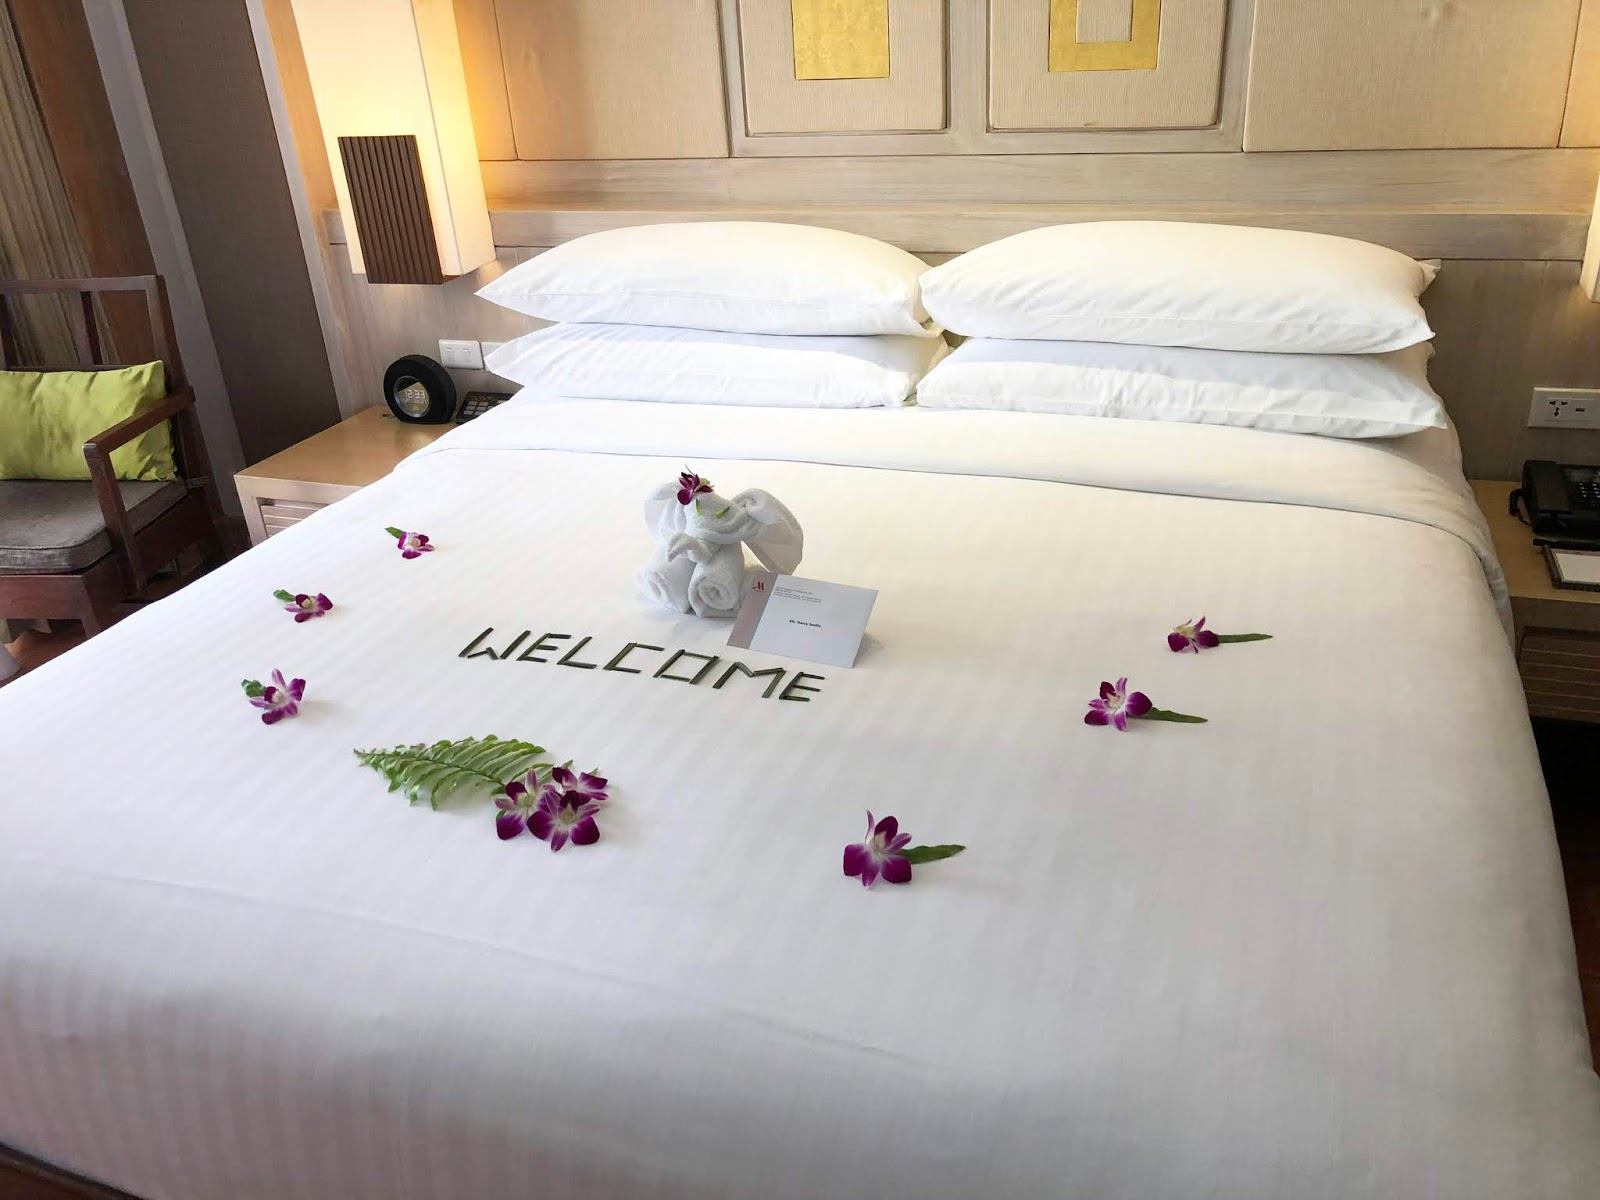 phuket marriott resort and spa bedroom